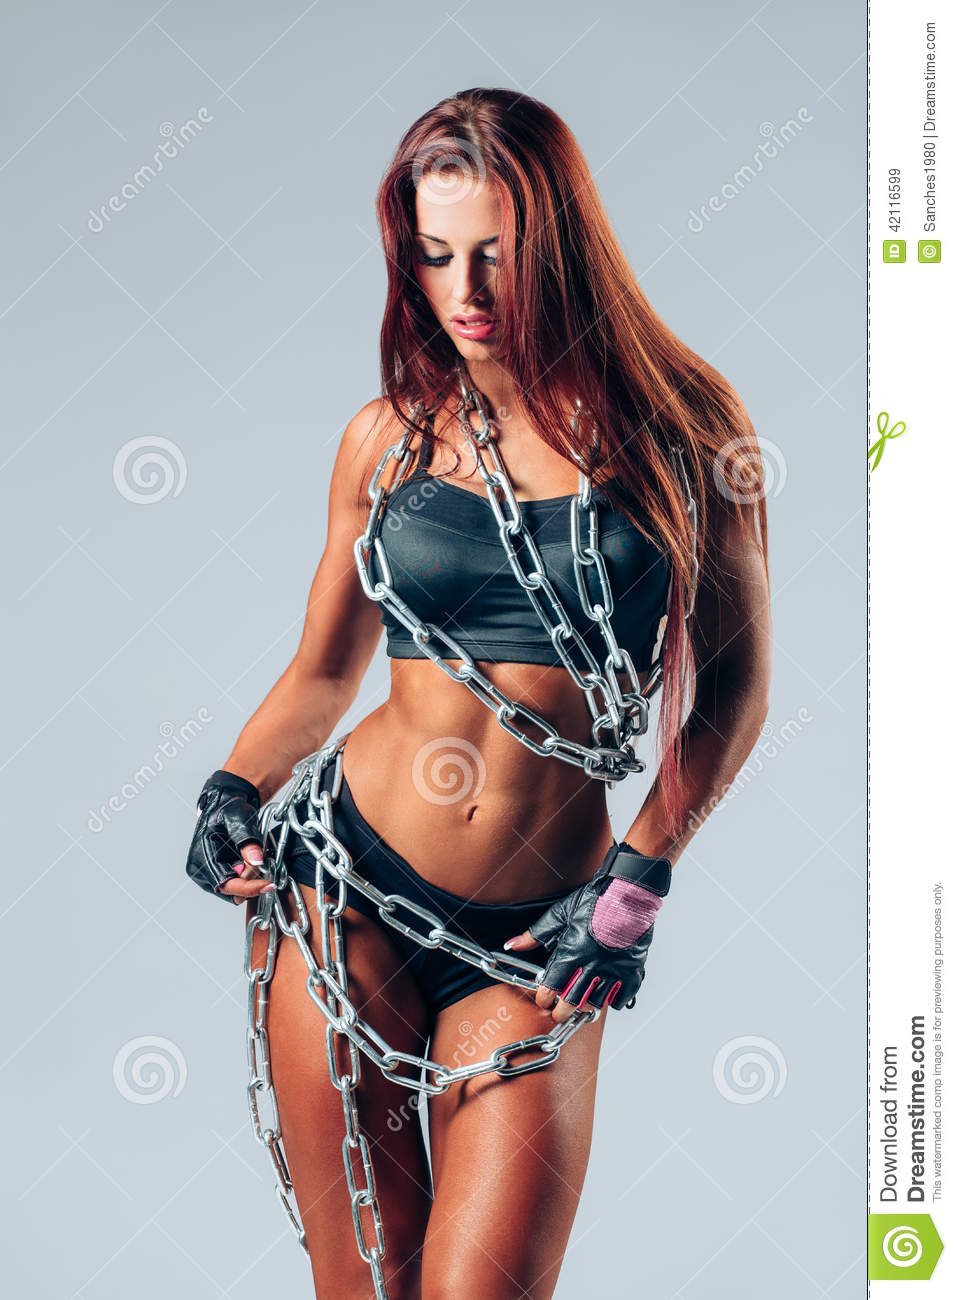 muscle women in chains